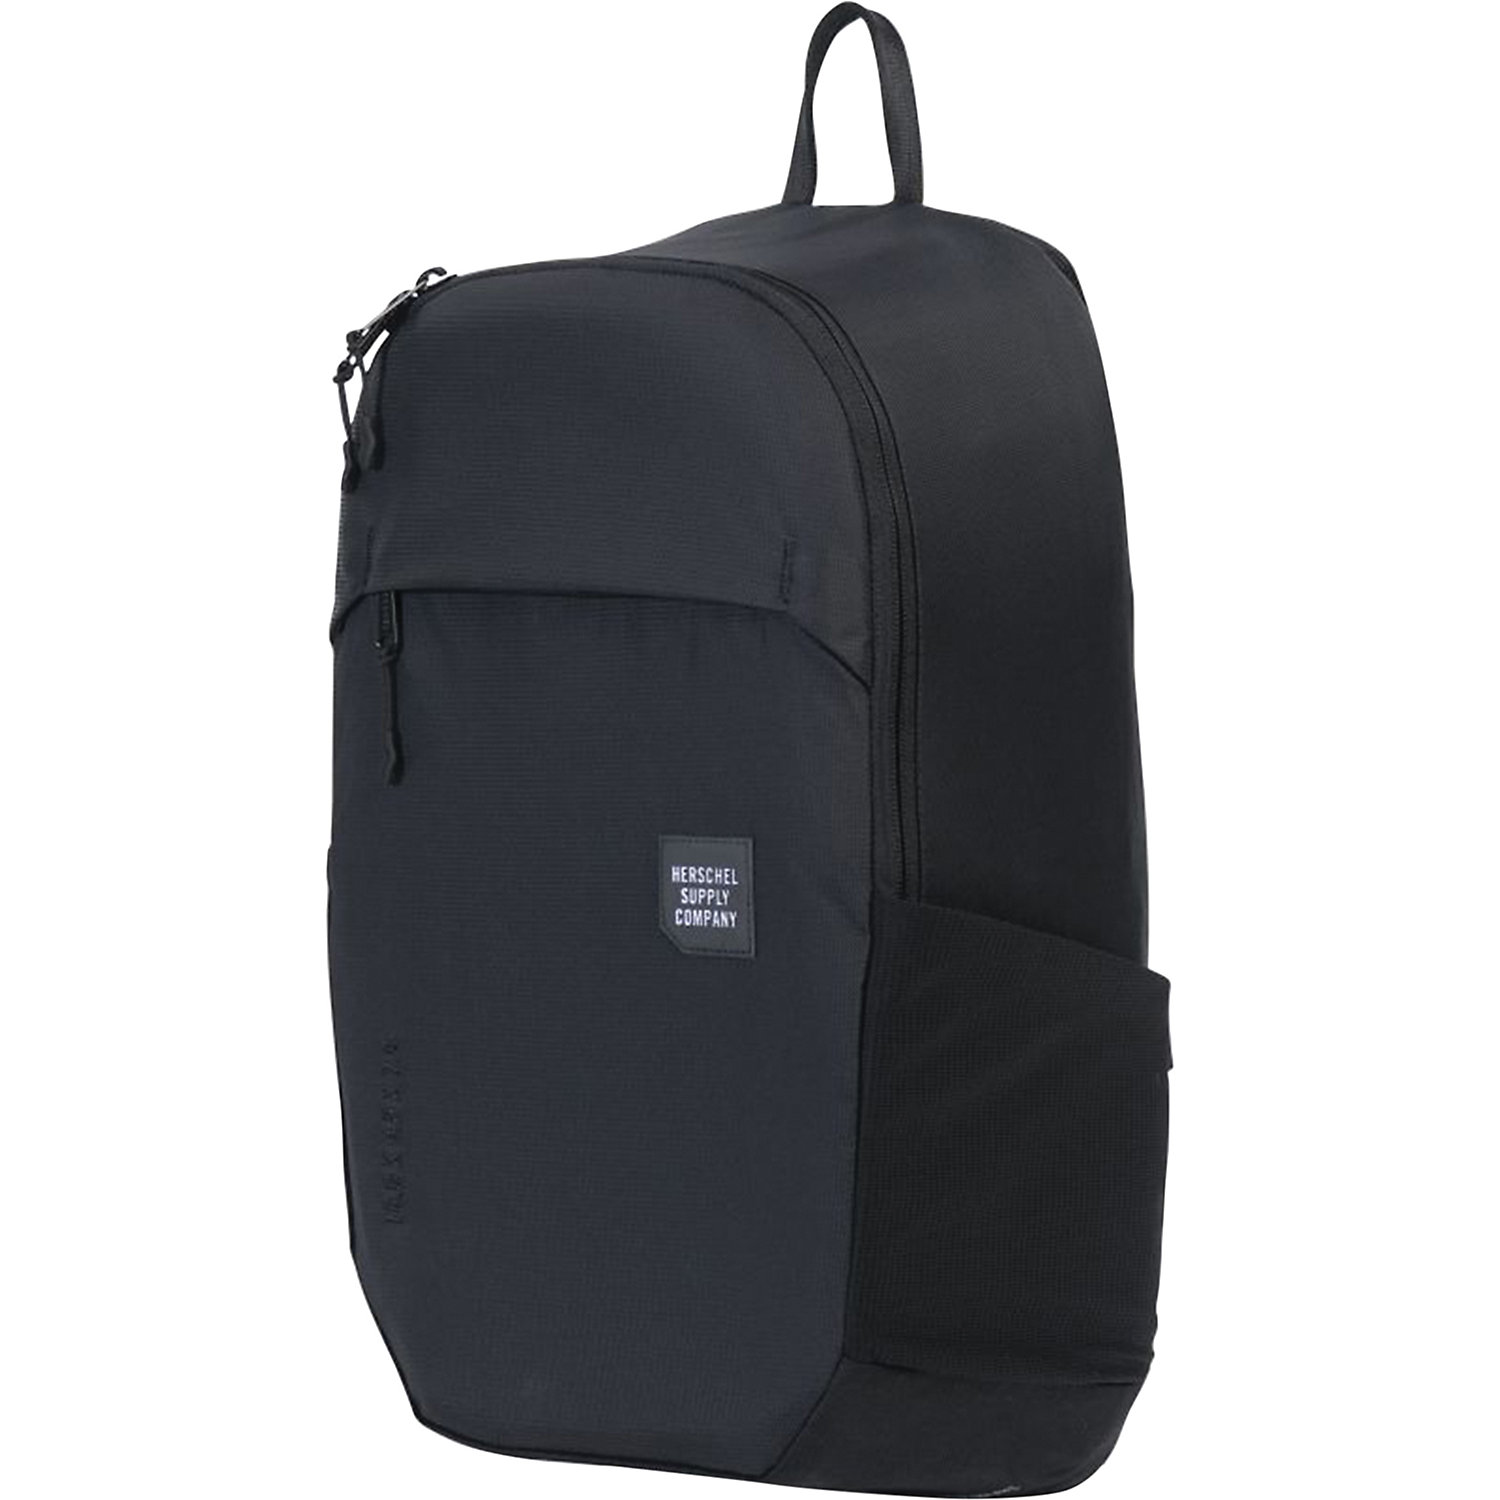 retail prices get online how to buy Herschel Supply Co Mammoth Backpack - Moosejaw